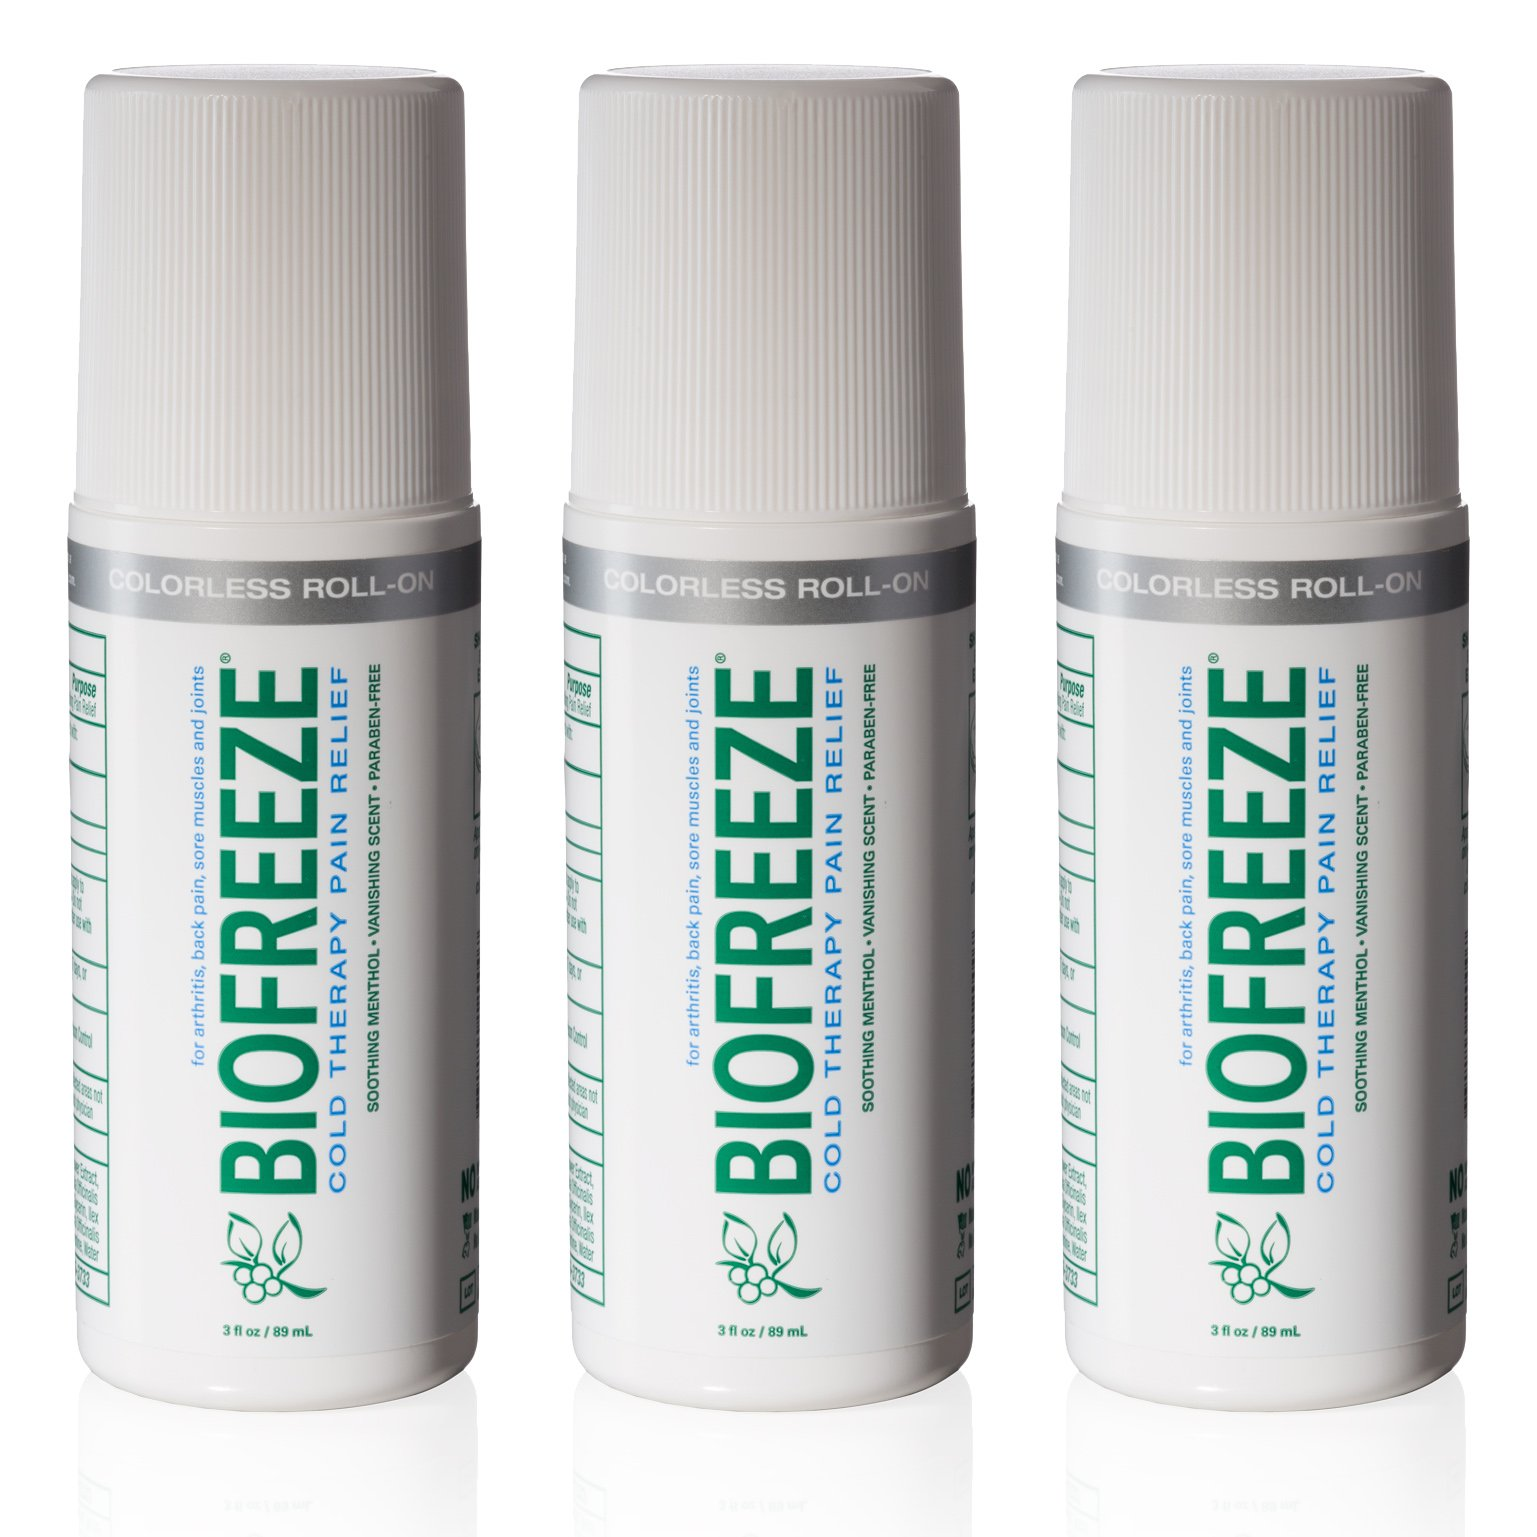 Biofreeze Pain Relief Gel, 3 oz. Colorless Roll-On, Fast Acting, Long Lasting, & Powerful Topical Pain Reliever, Pack of 3